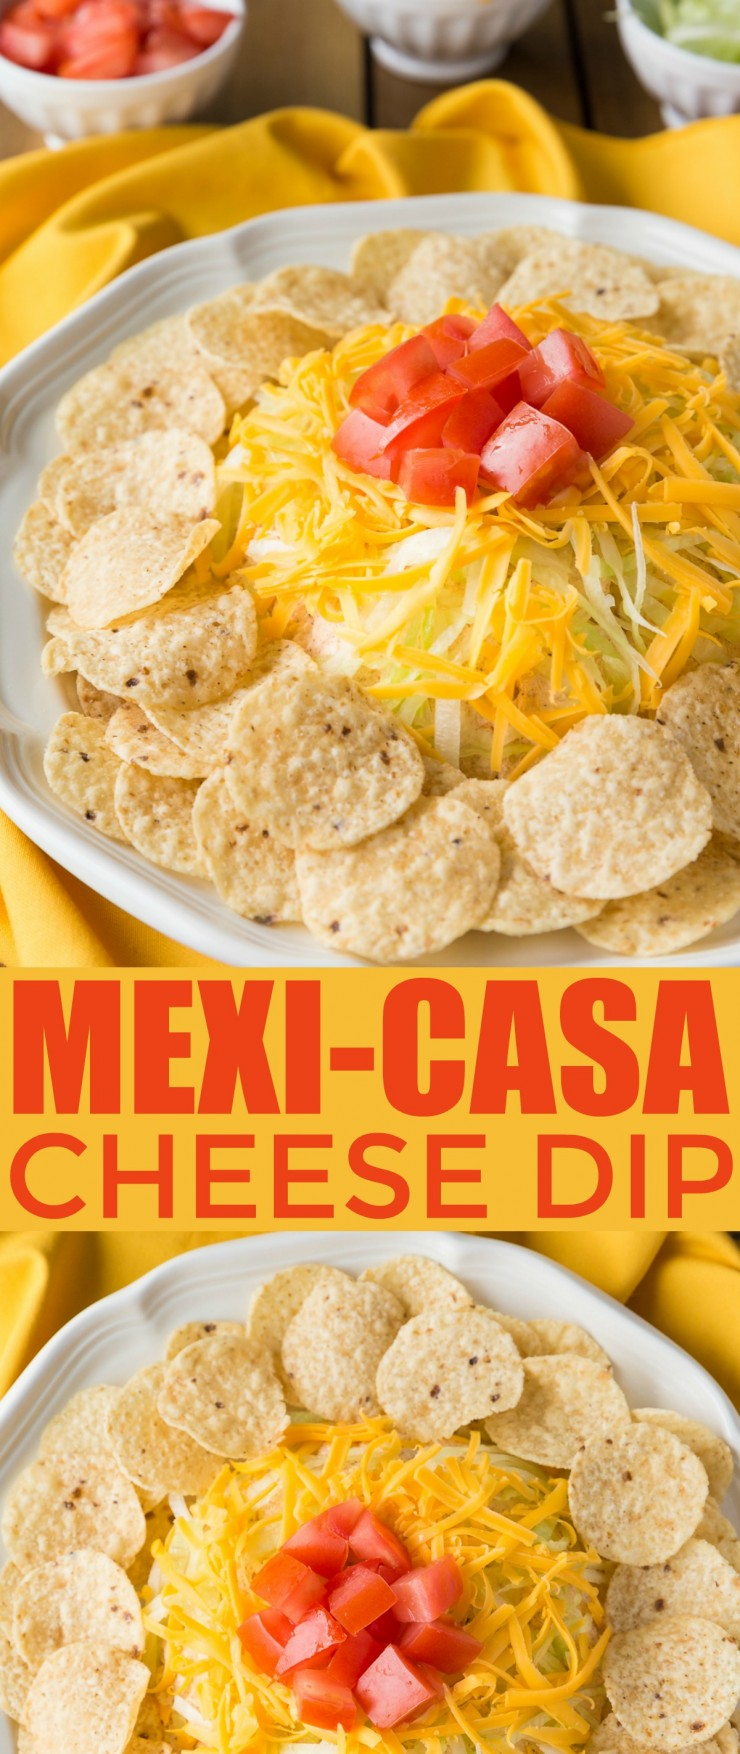 This Mexi-Casa cheese dip has been a family favourite since I was a kid. It is like a taco redone as a cheese ball topped with all the fixings you might dress your taco up in. It's a fabulous appetizer for any party or family get-together.